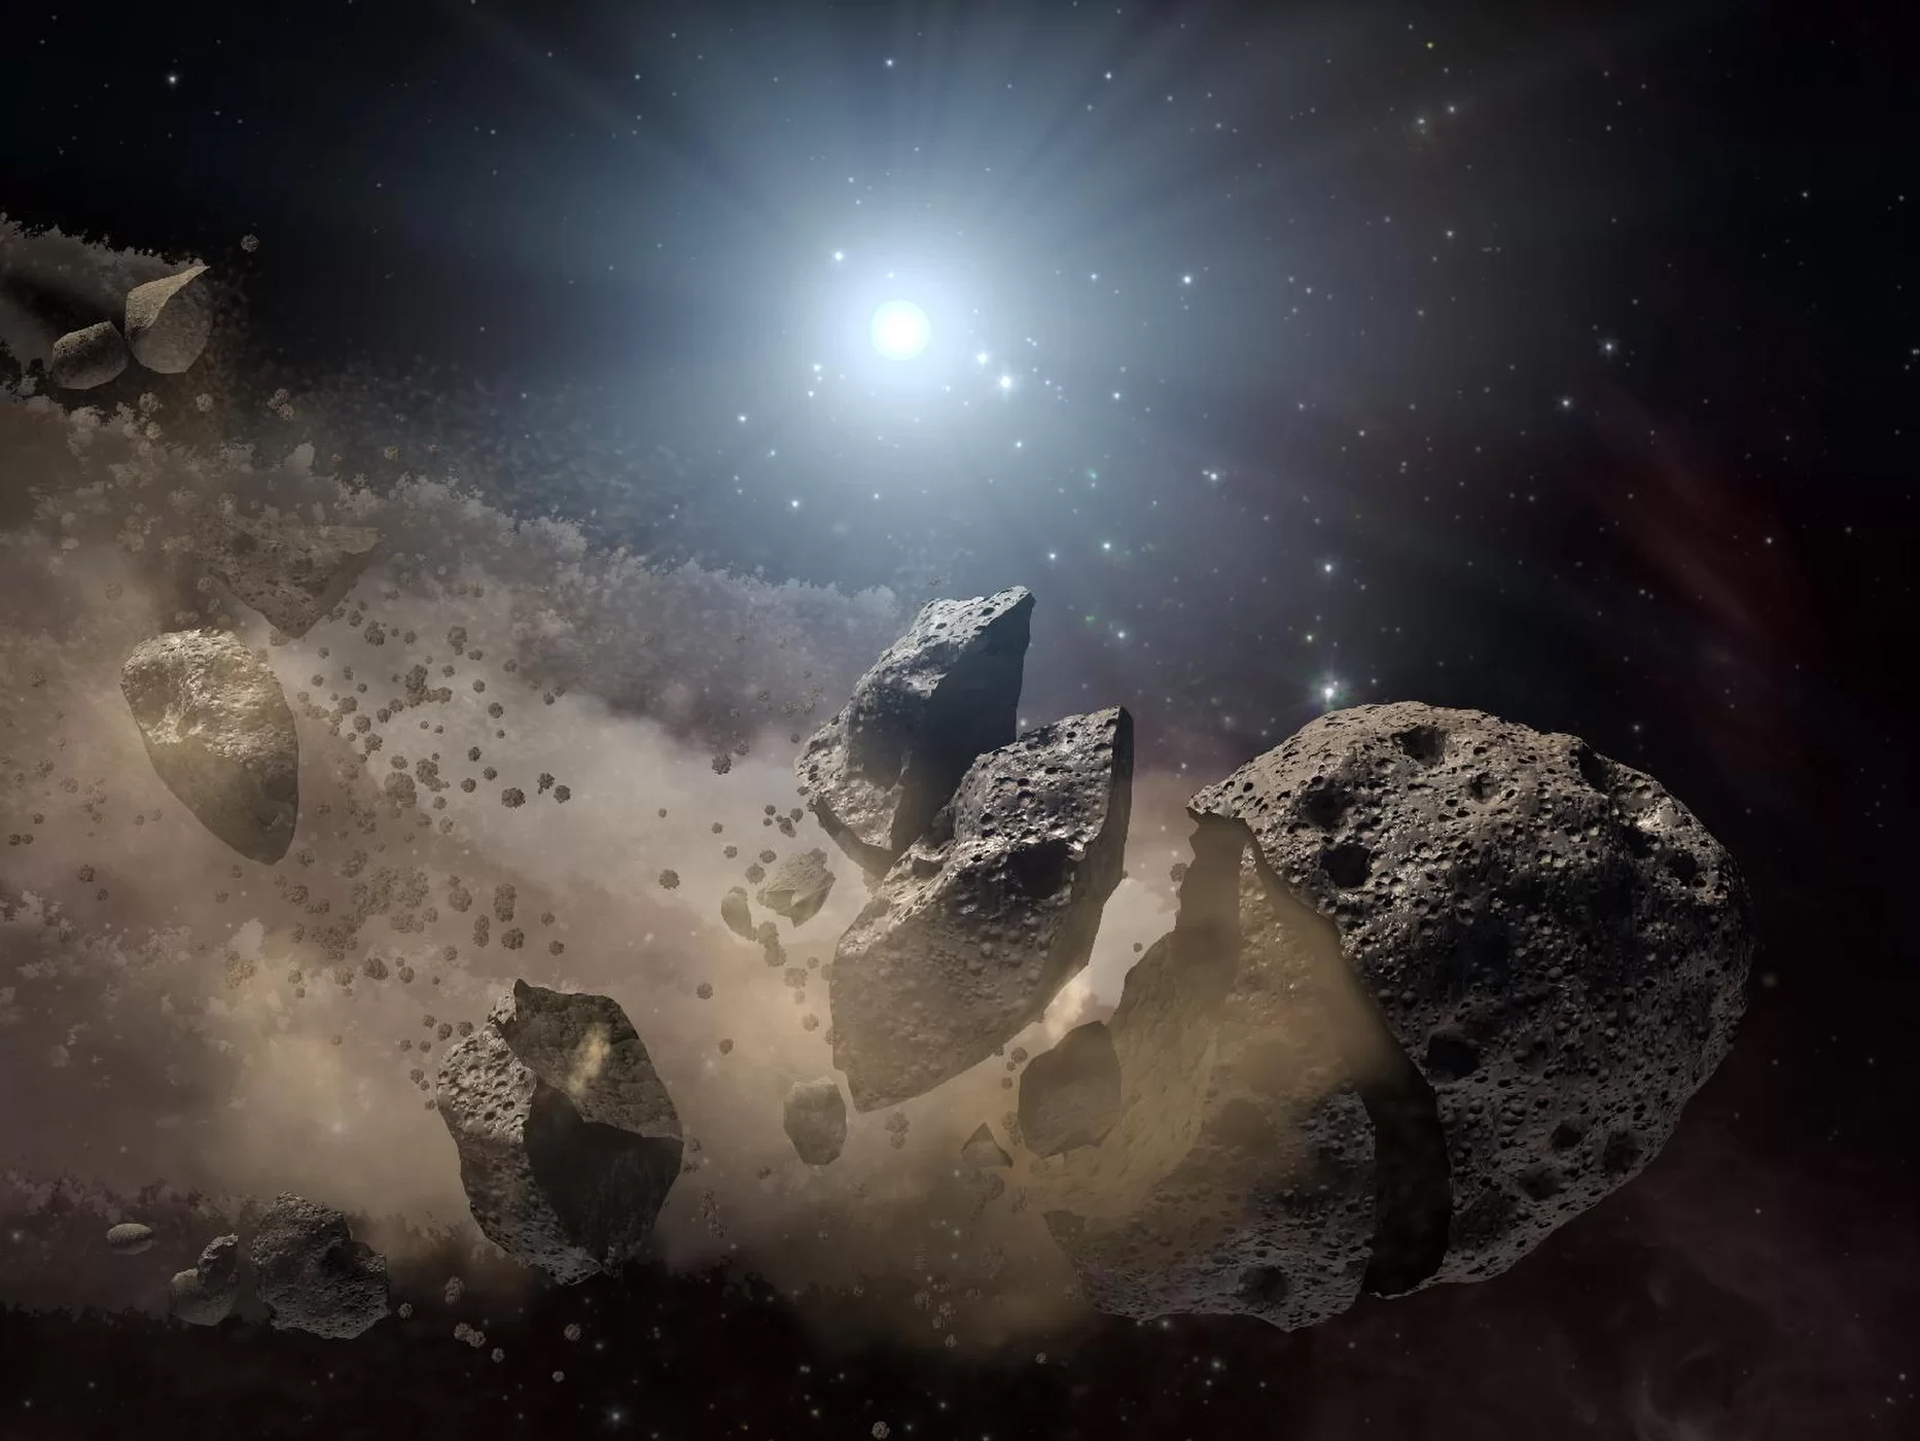 Massive, 3-mile-wide 'potentially hazardous asteroid' will zoom past Earth tomorrow